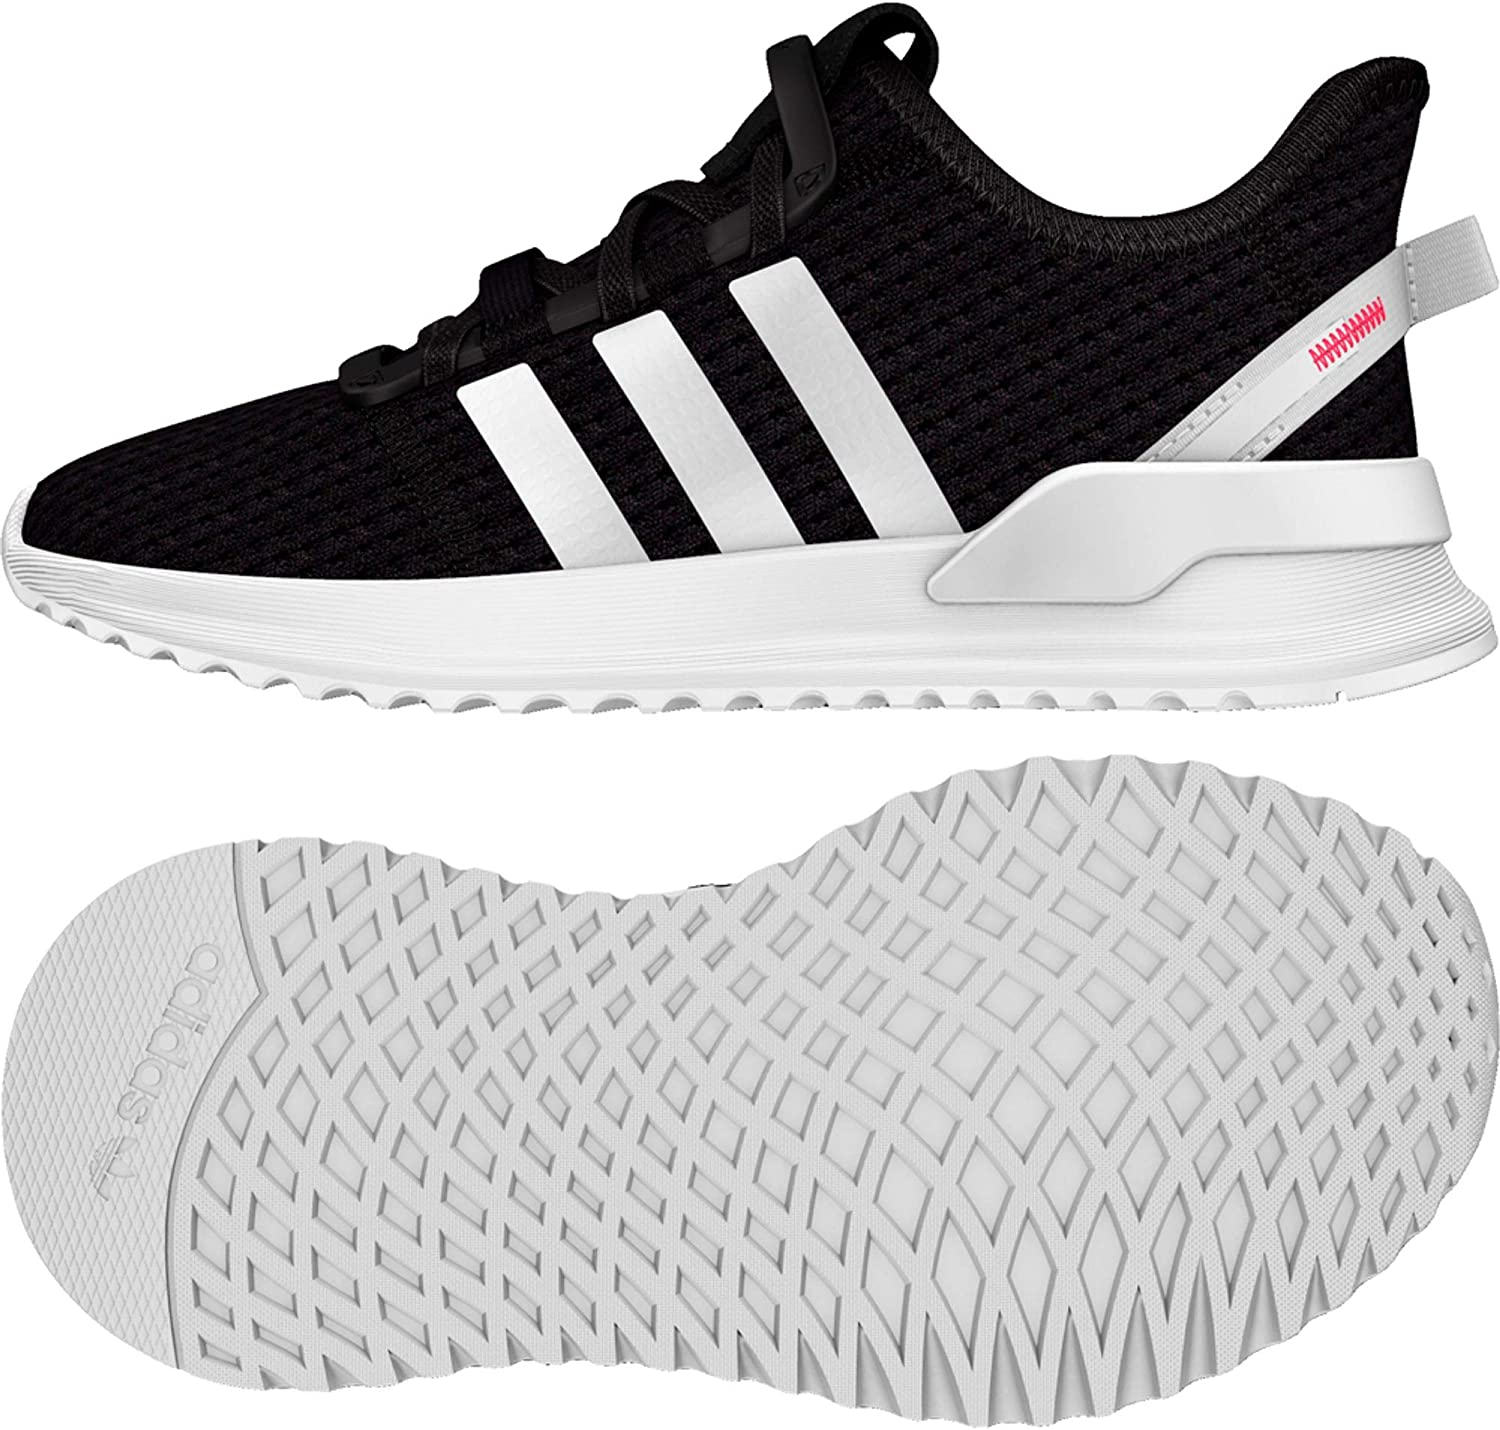 adidas U_Path Run C, Zapatillas de Gimnasio Unisex niños: Amazon.es: Zapatos y complementos